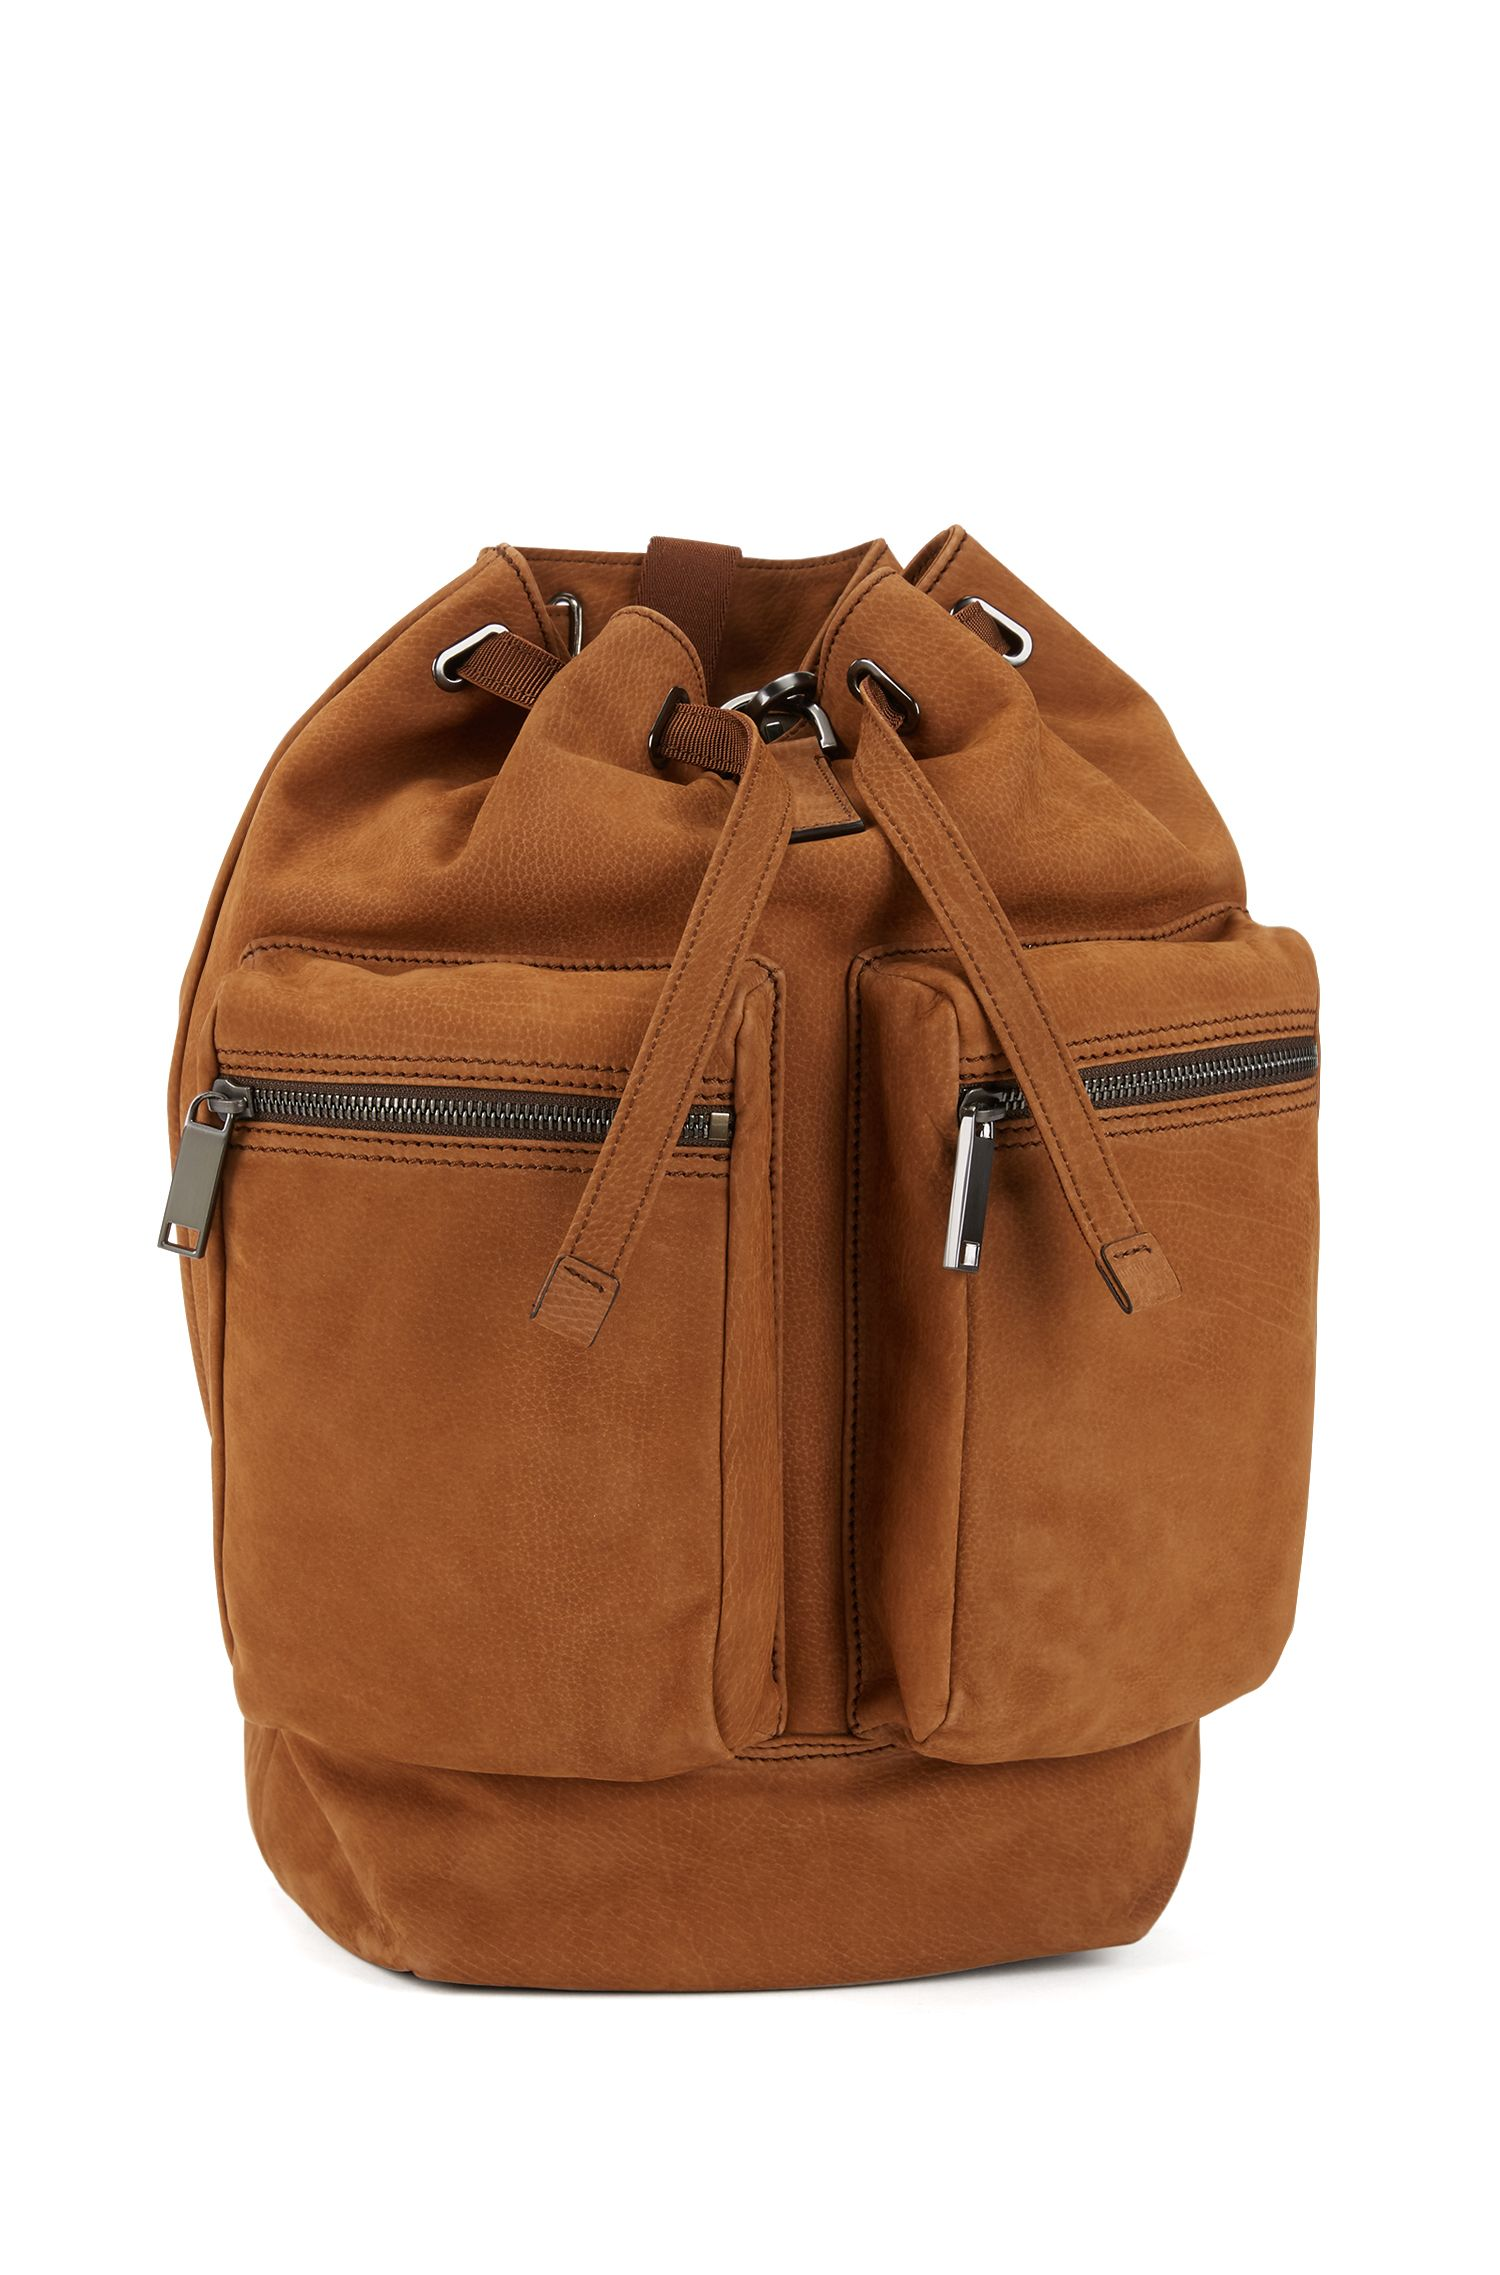 Fashion Show Capsule backpack in grainy calf leather, Khaki